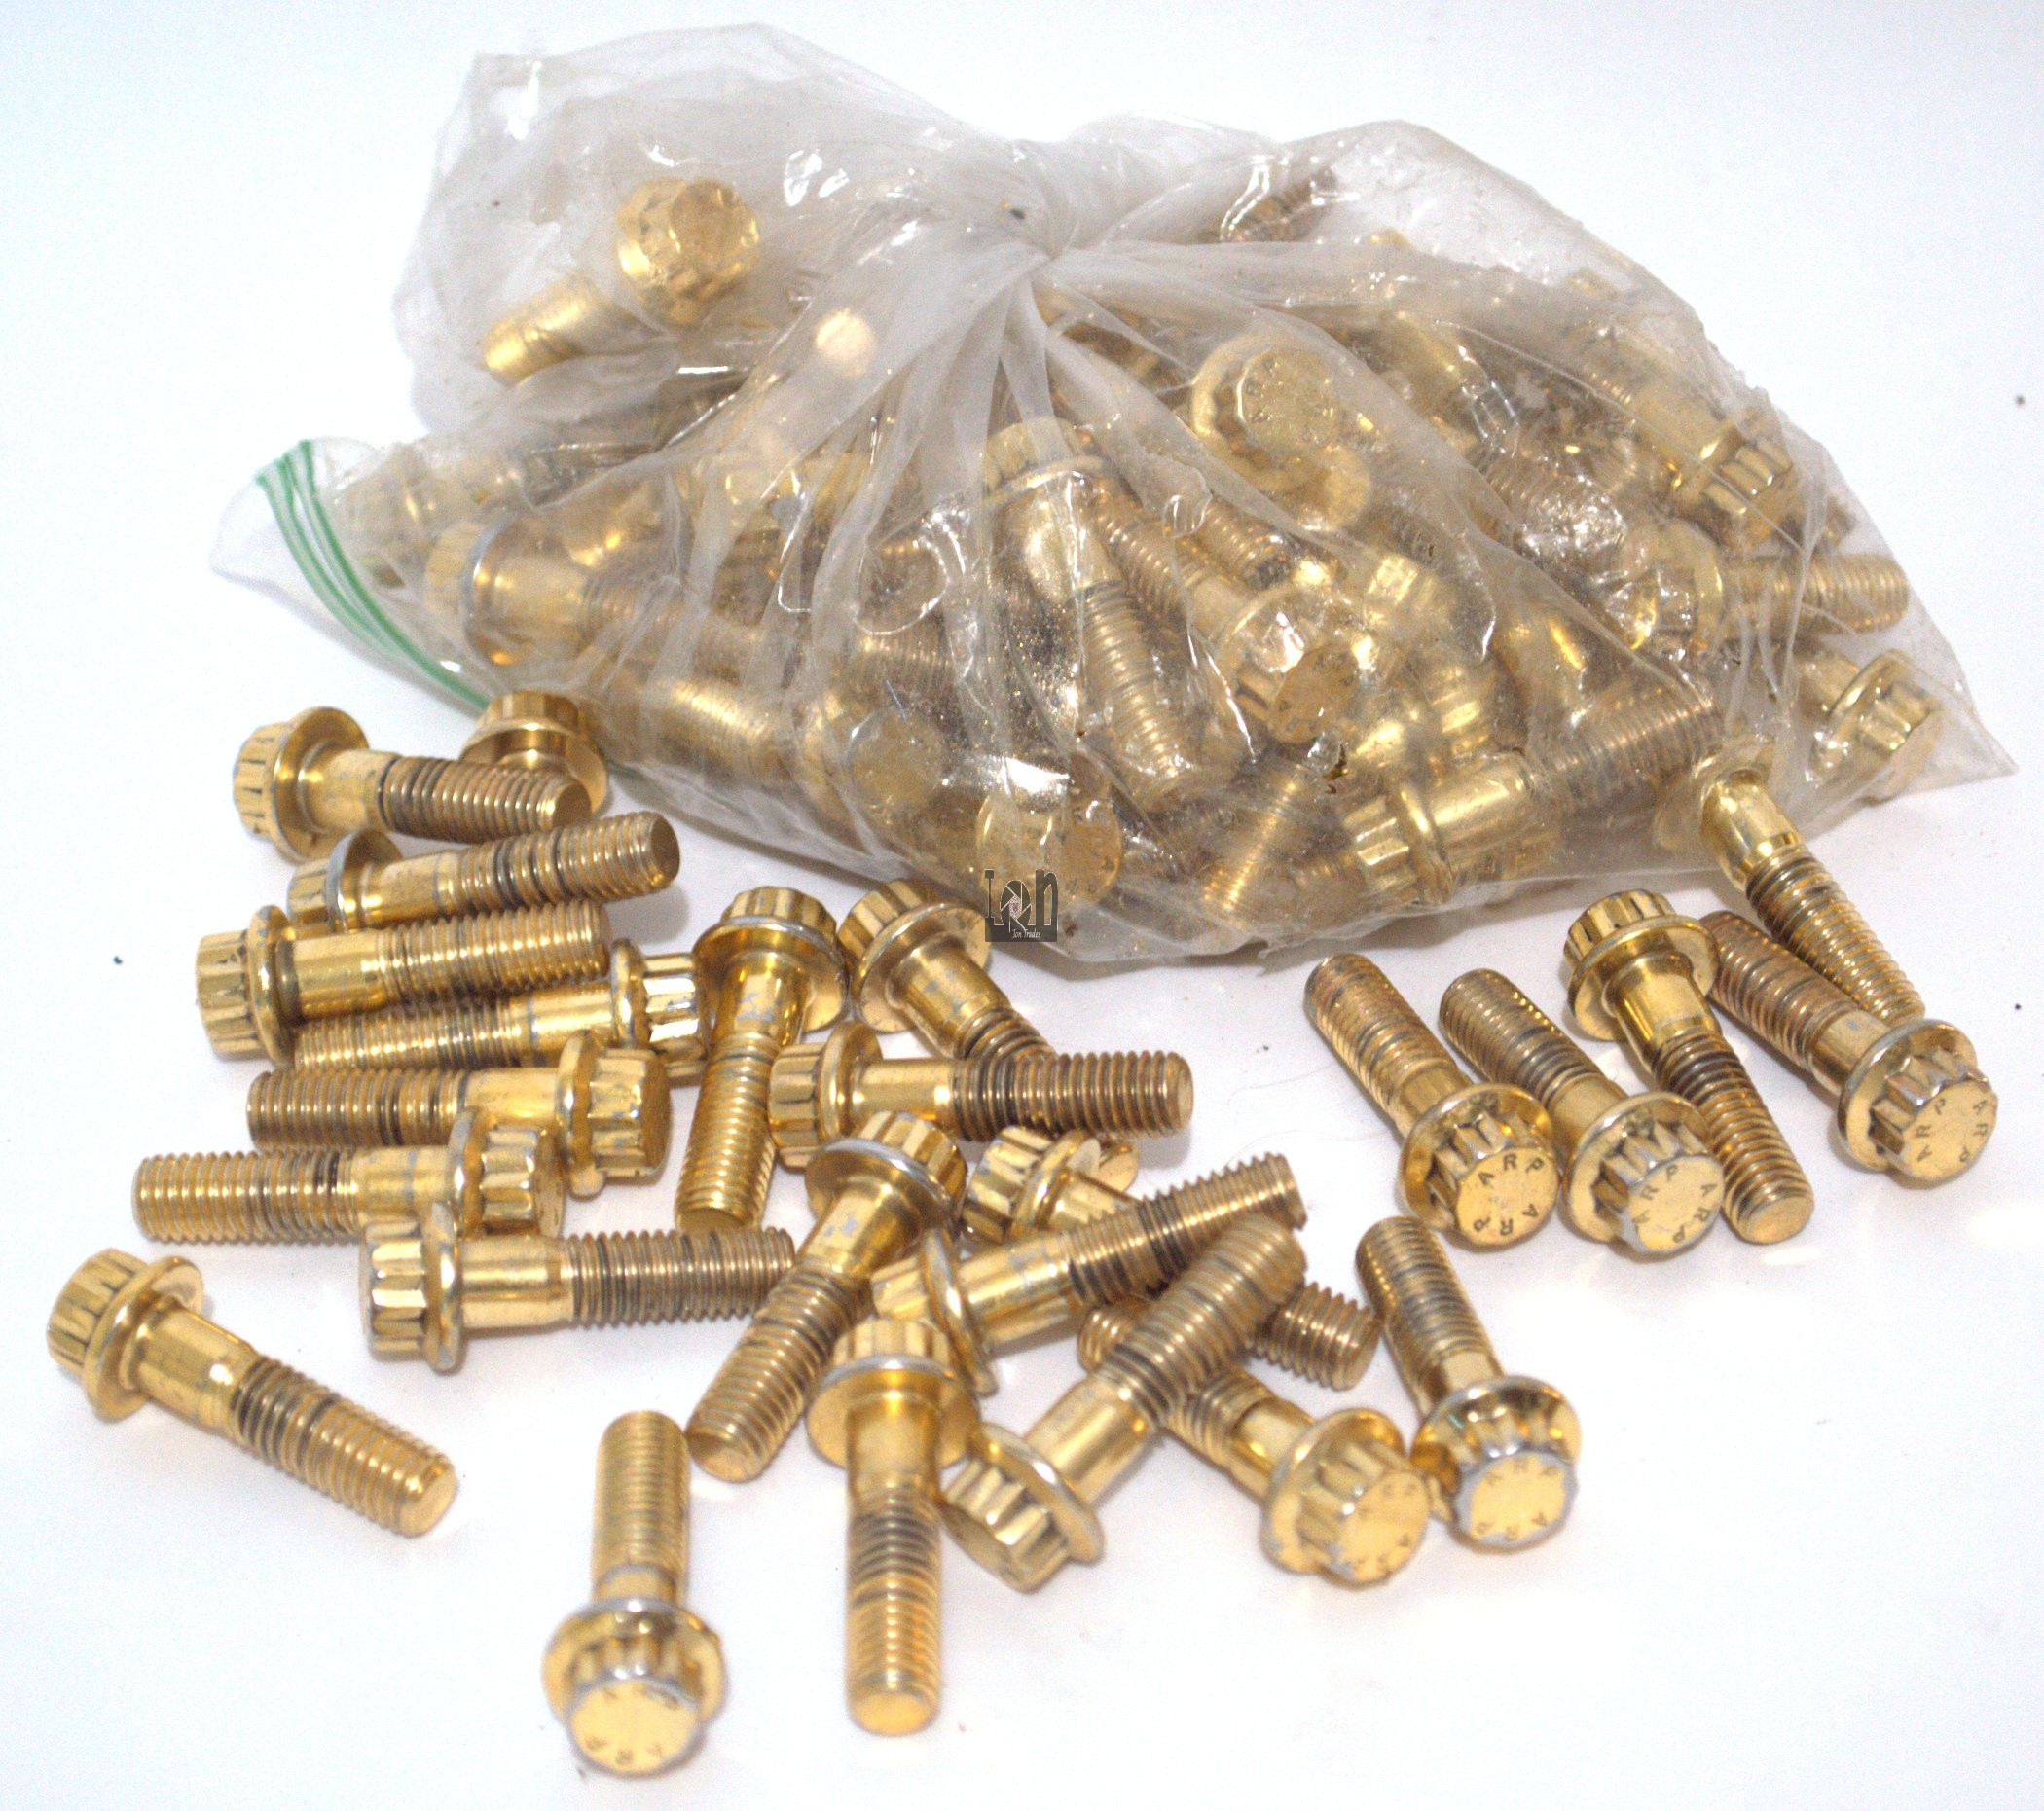 10pc Lot of ARP M8 Bolts M8x1.25 x 30mm x 20mm 12pt 12 point Gold Ring Gead Head Bolts